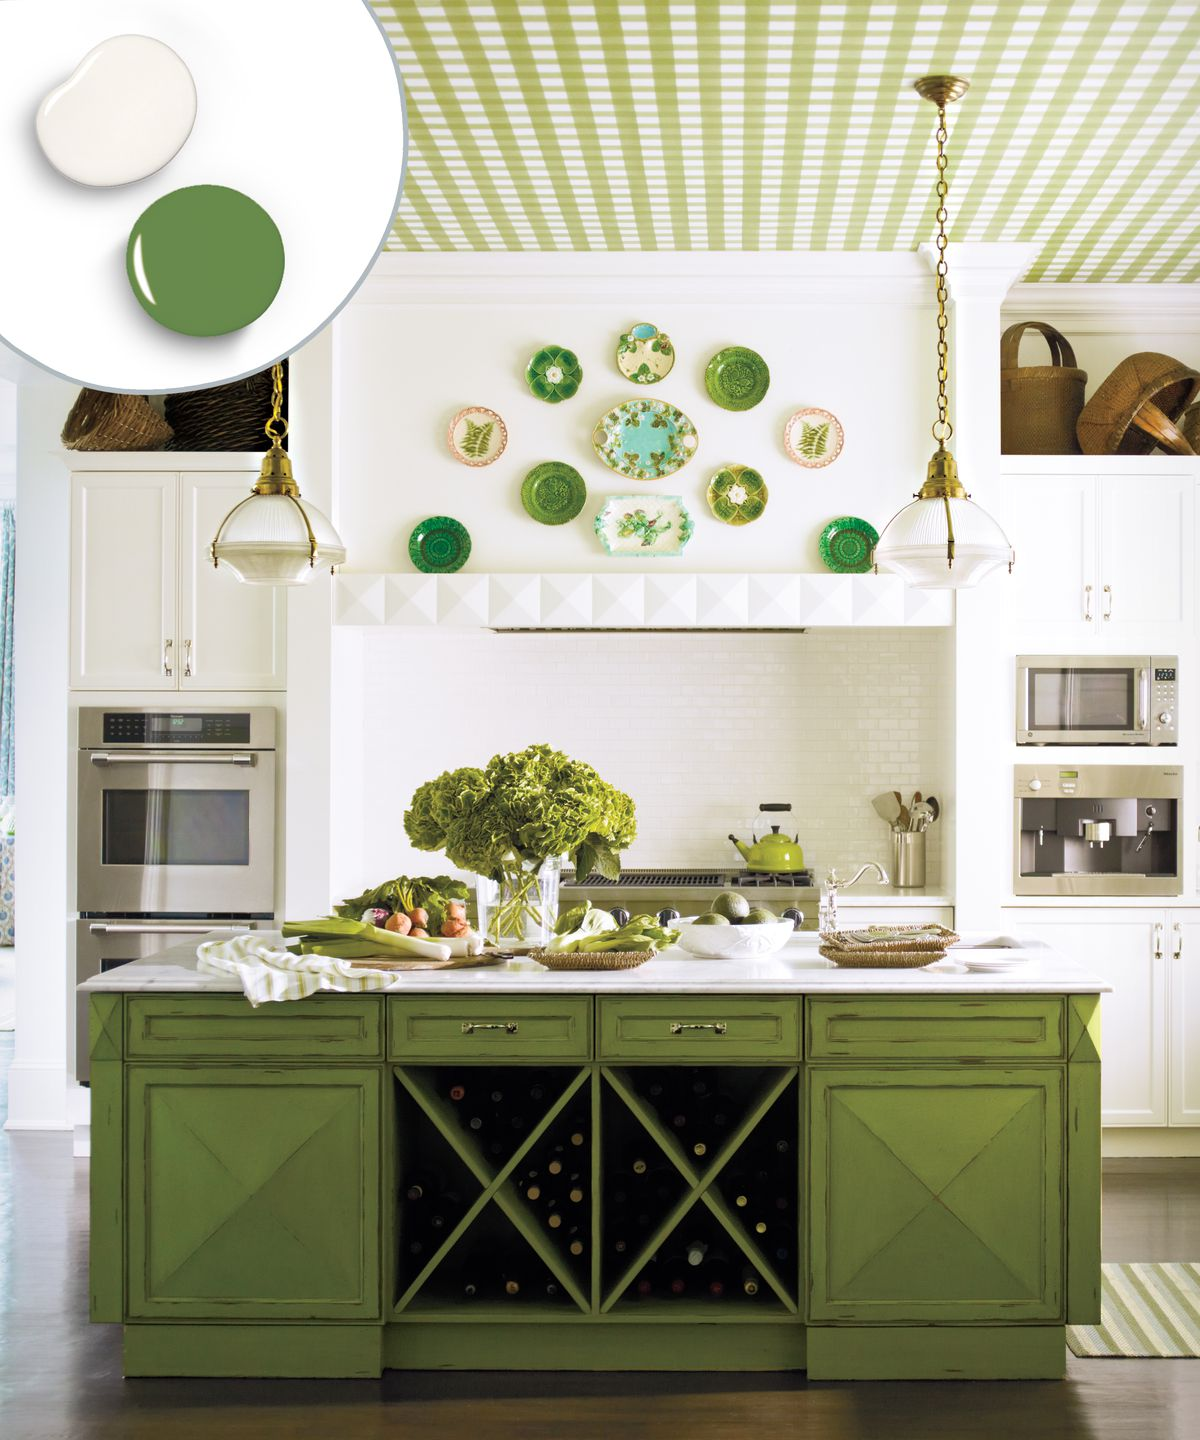 Monochromatic green kitchen color scheme with green cabinets, checkered green ceilings, and green decor.